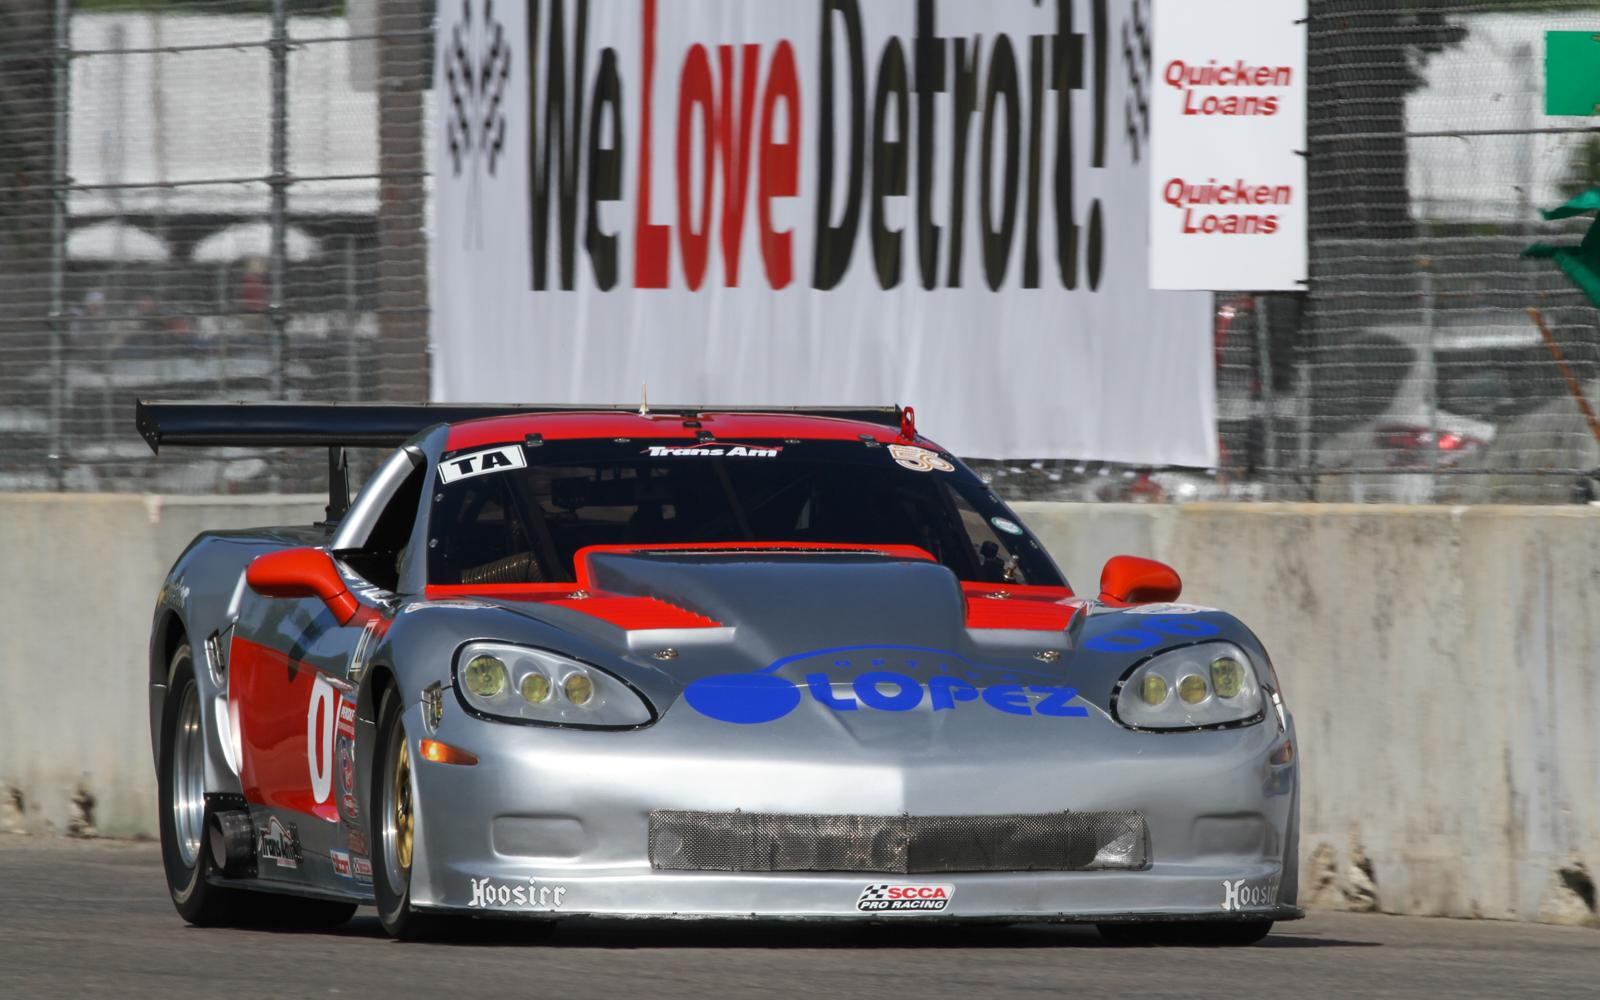 RJ Lopez and Adam Andretti lead practice as Trans Am makes Detroit return